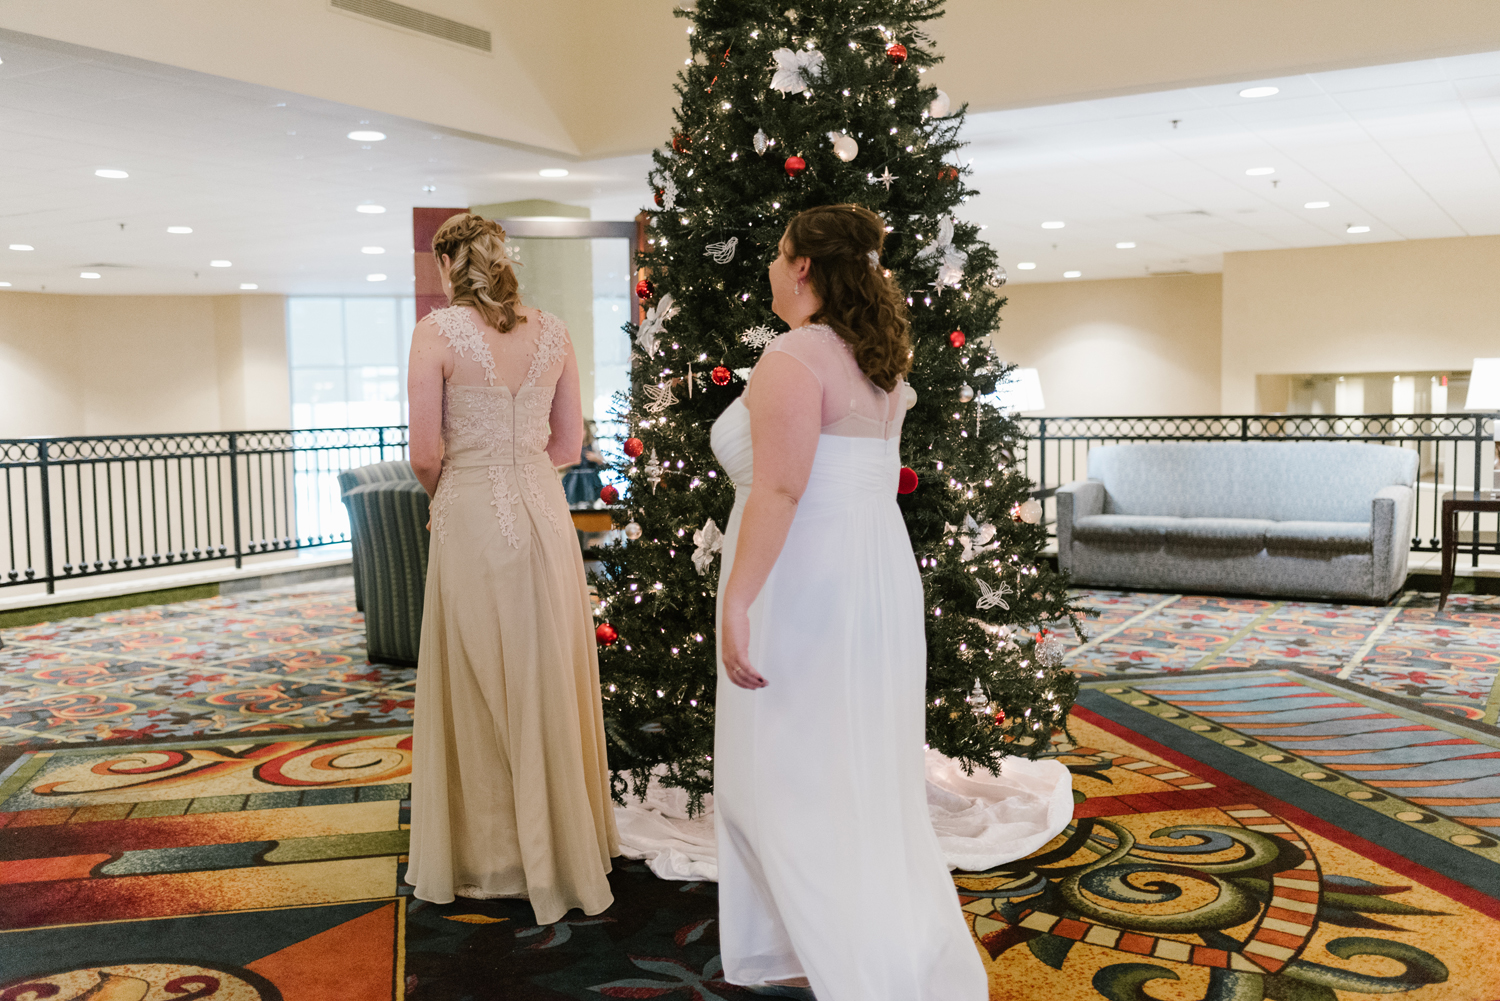 Brides having a first look together before wedding